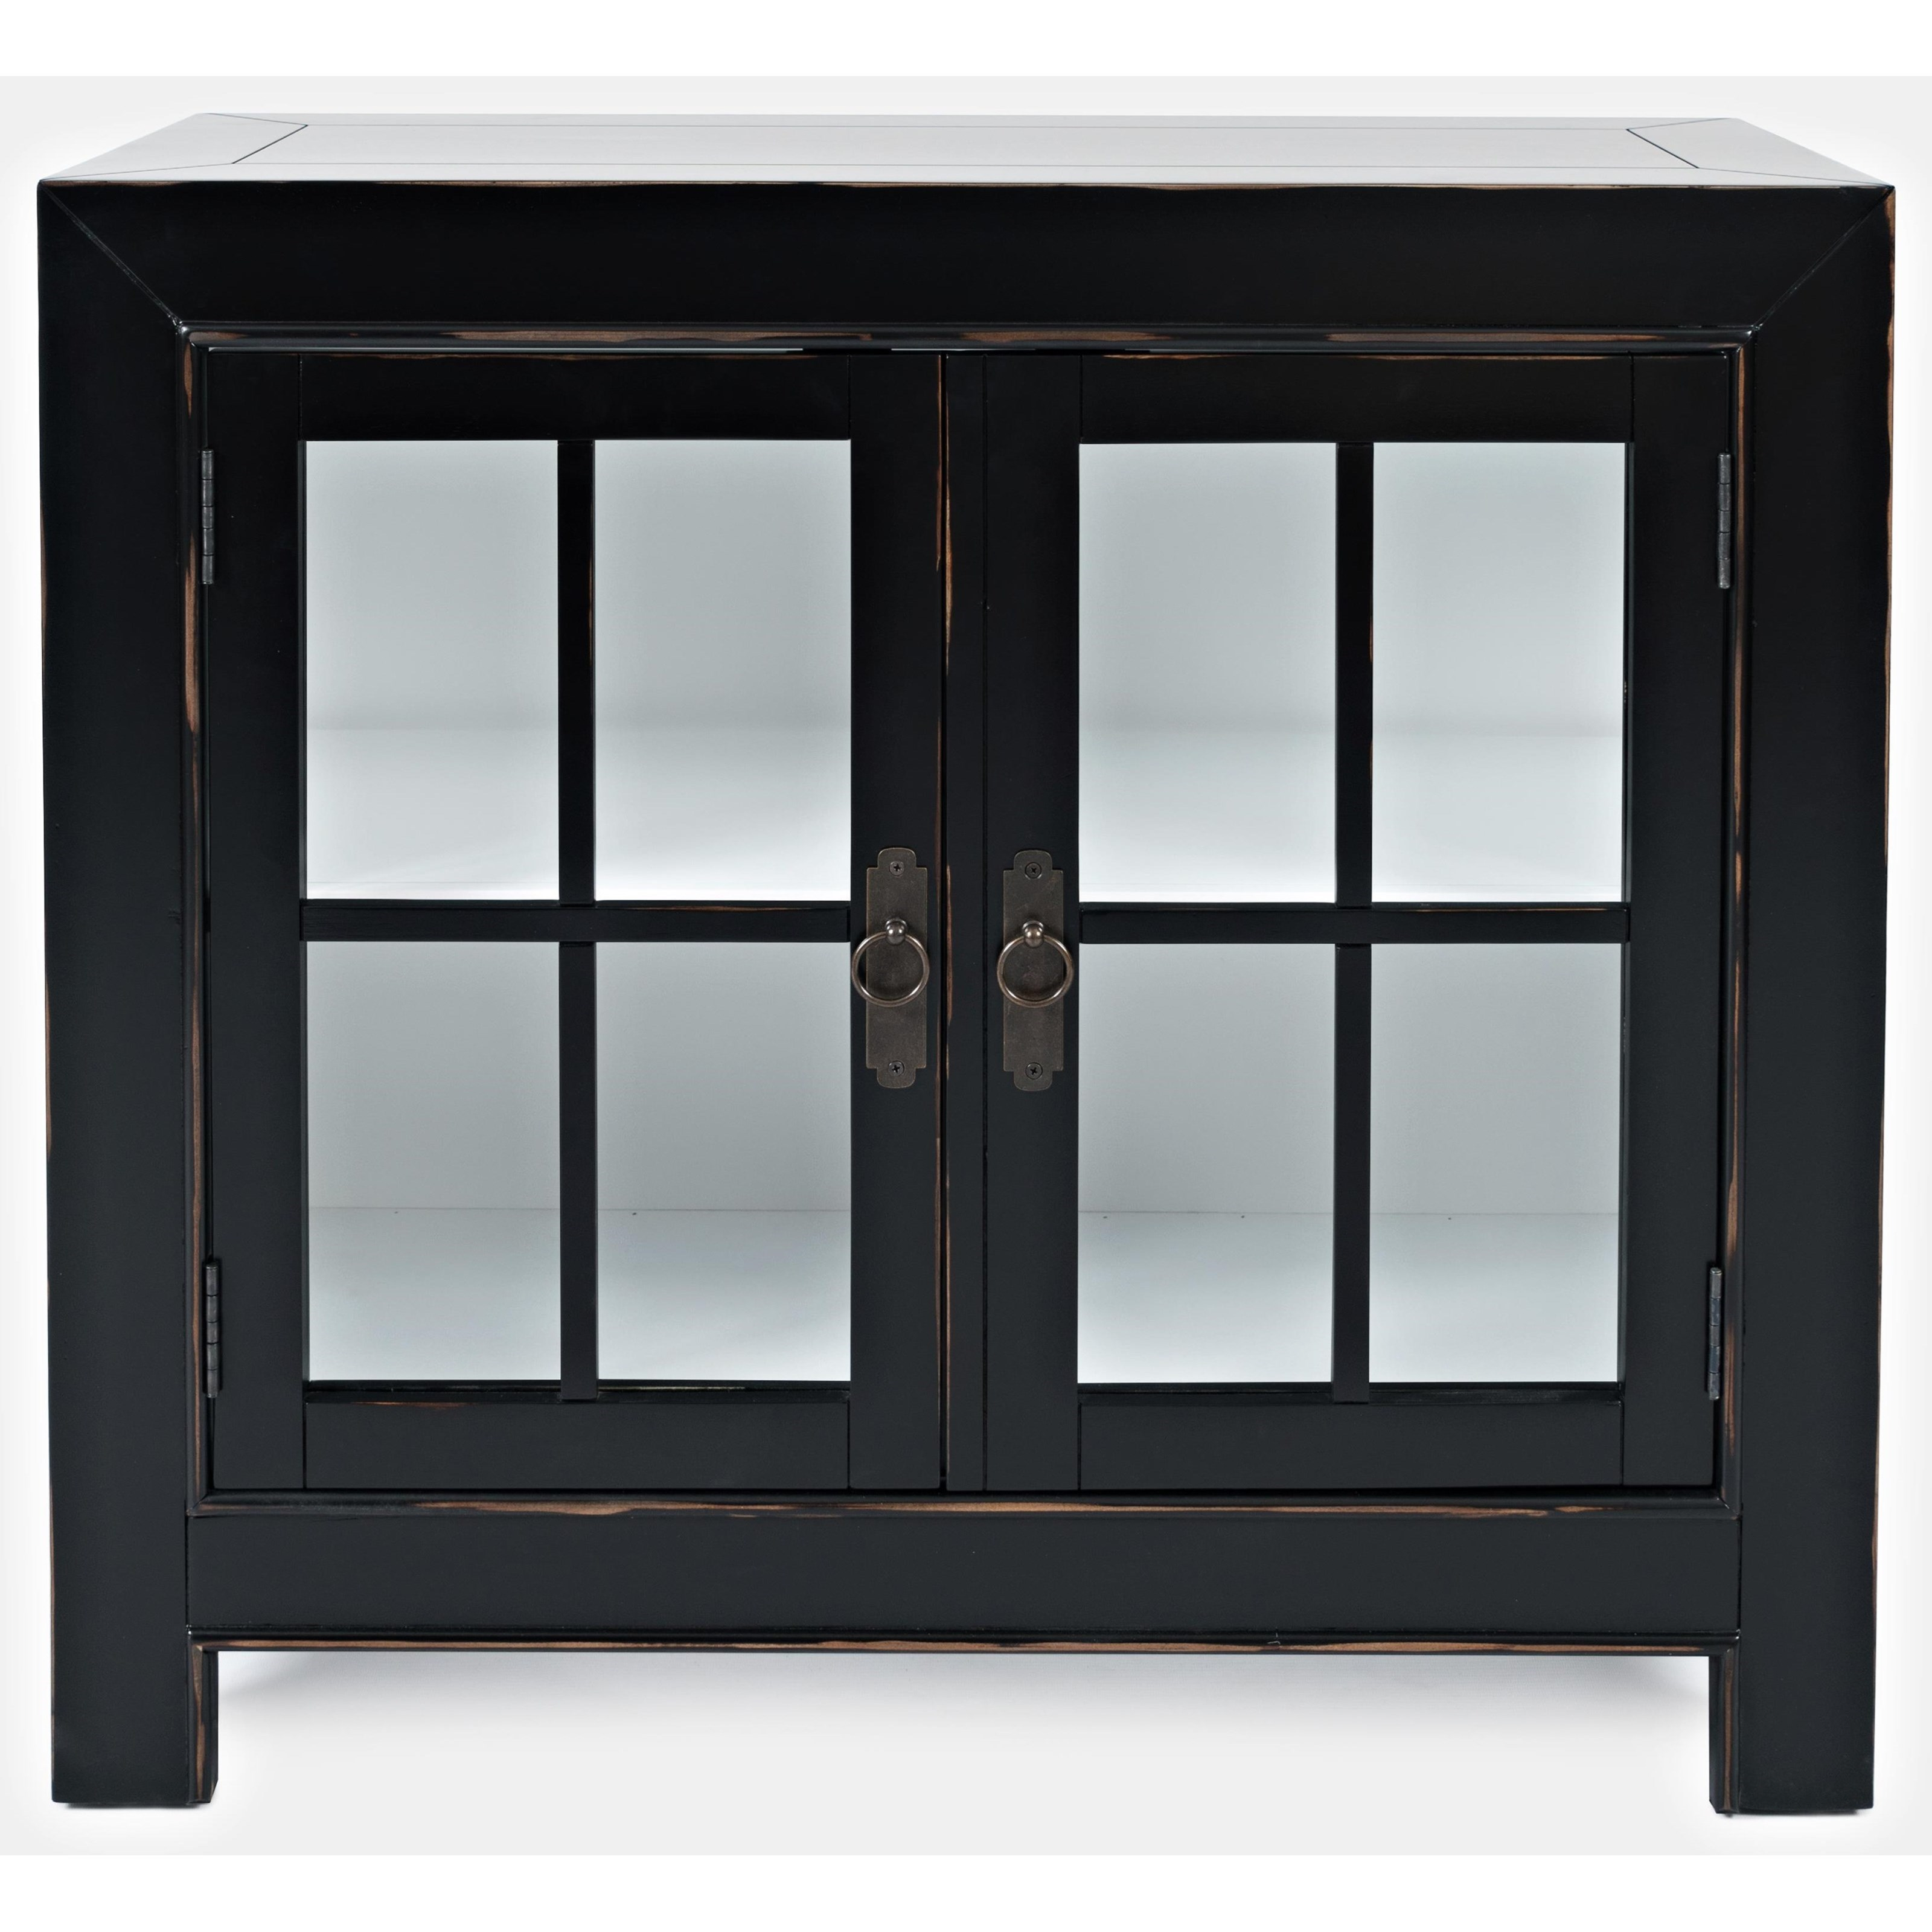 Aquitaine Accent Cabinet by Jofran at Simply Home by Lindy's